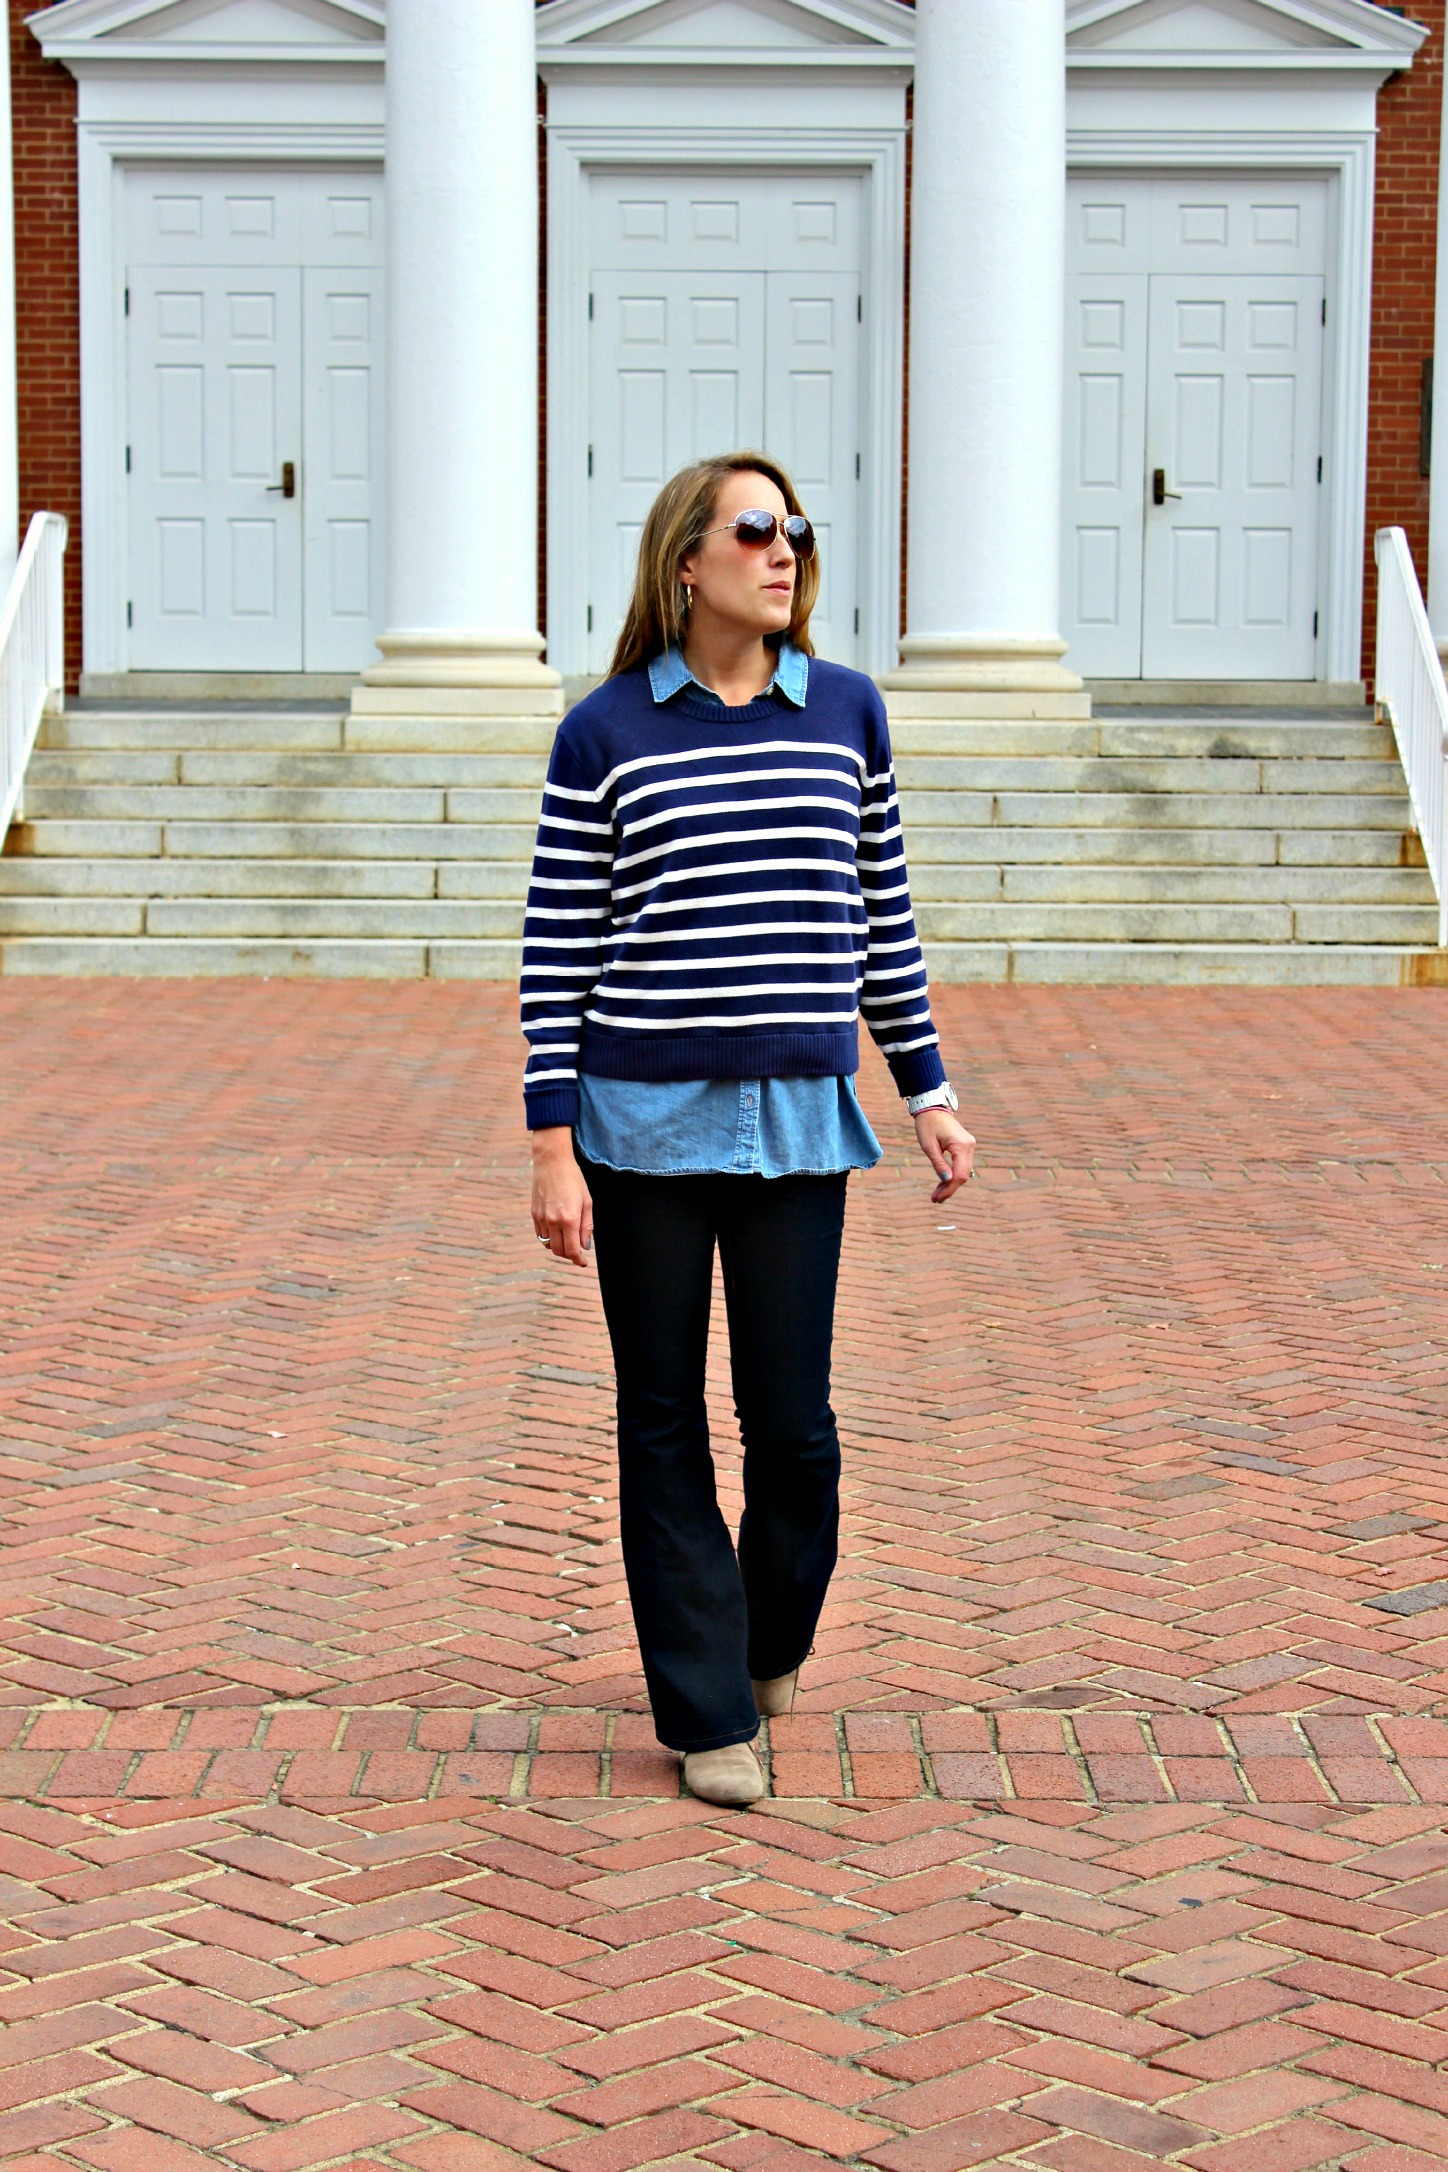 Wearing: The Fall Blues